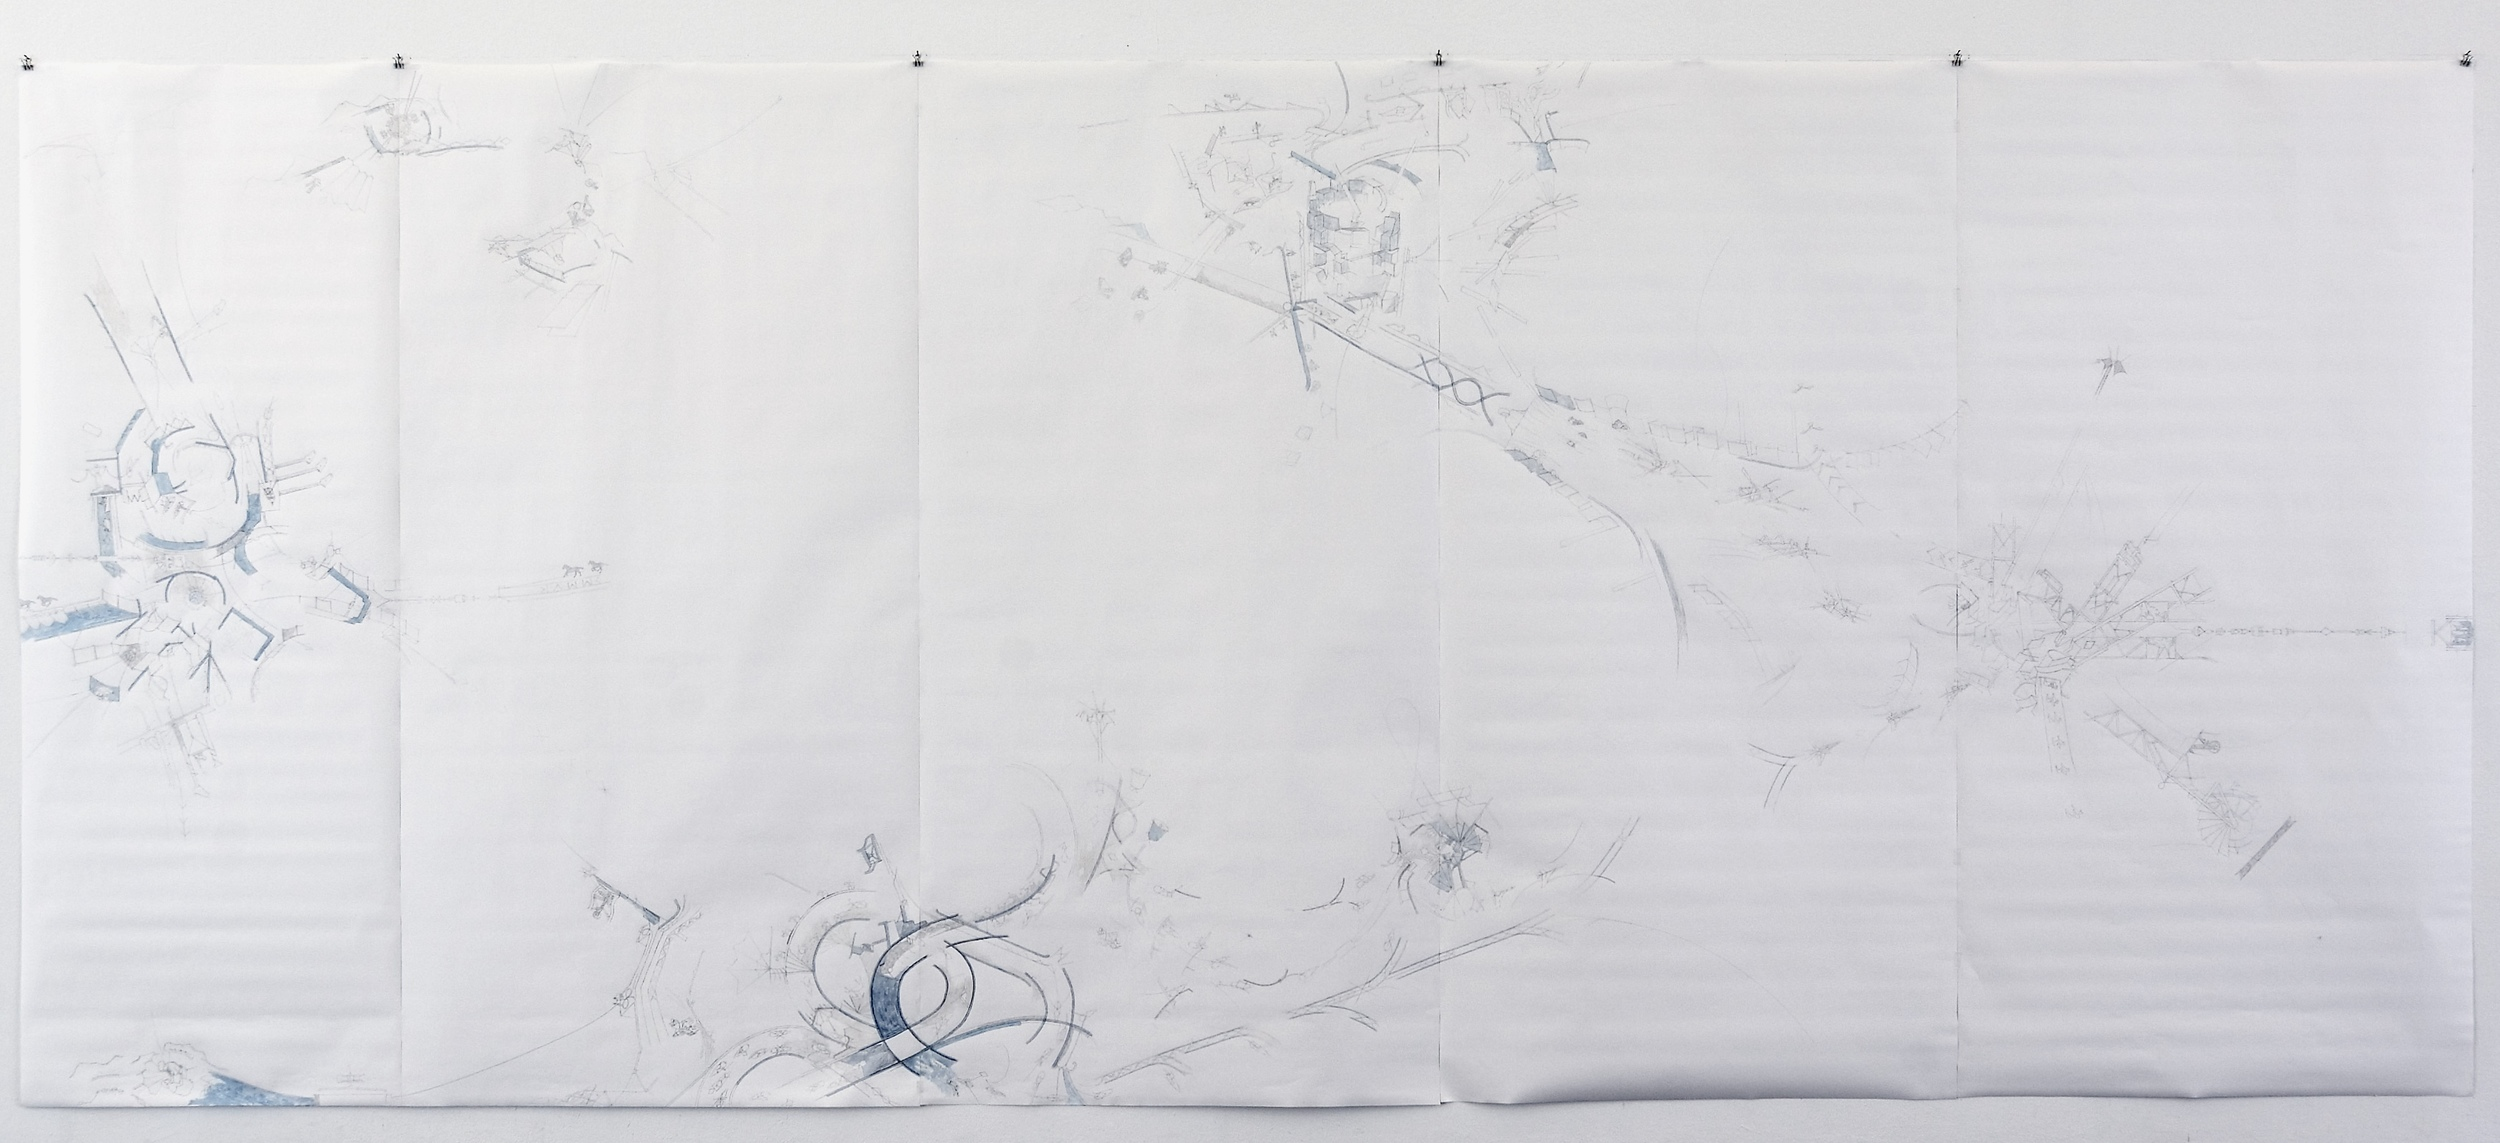 Welt, 2006. Pencil and watercolour on paper, 300 x 600 cm.